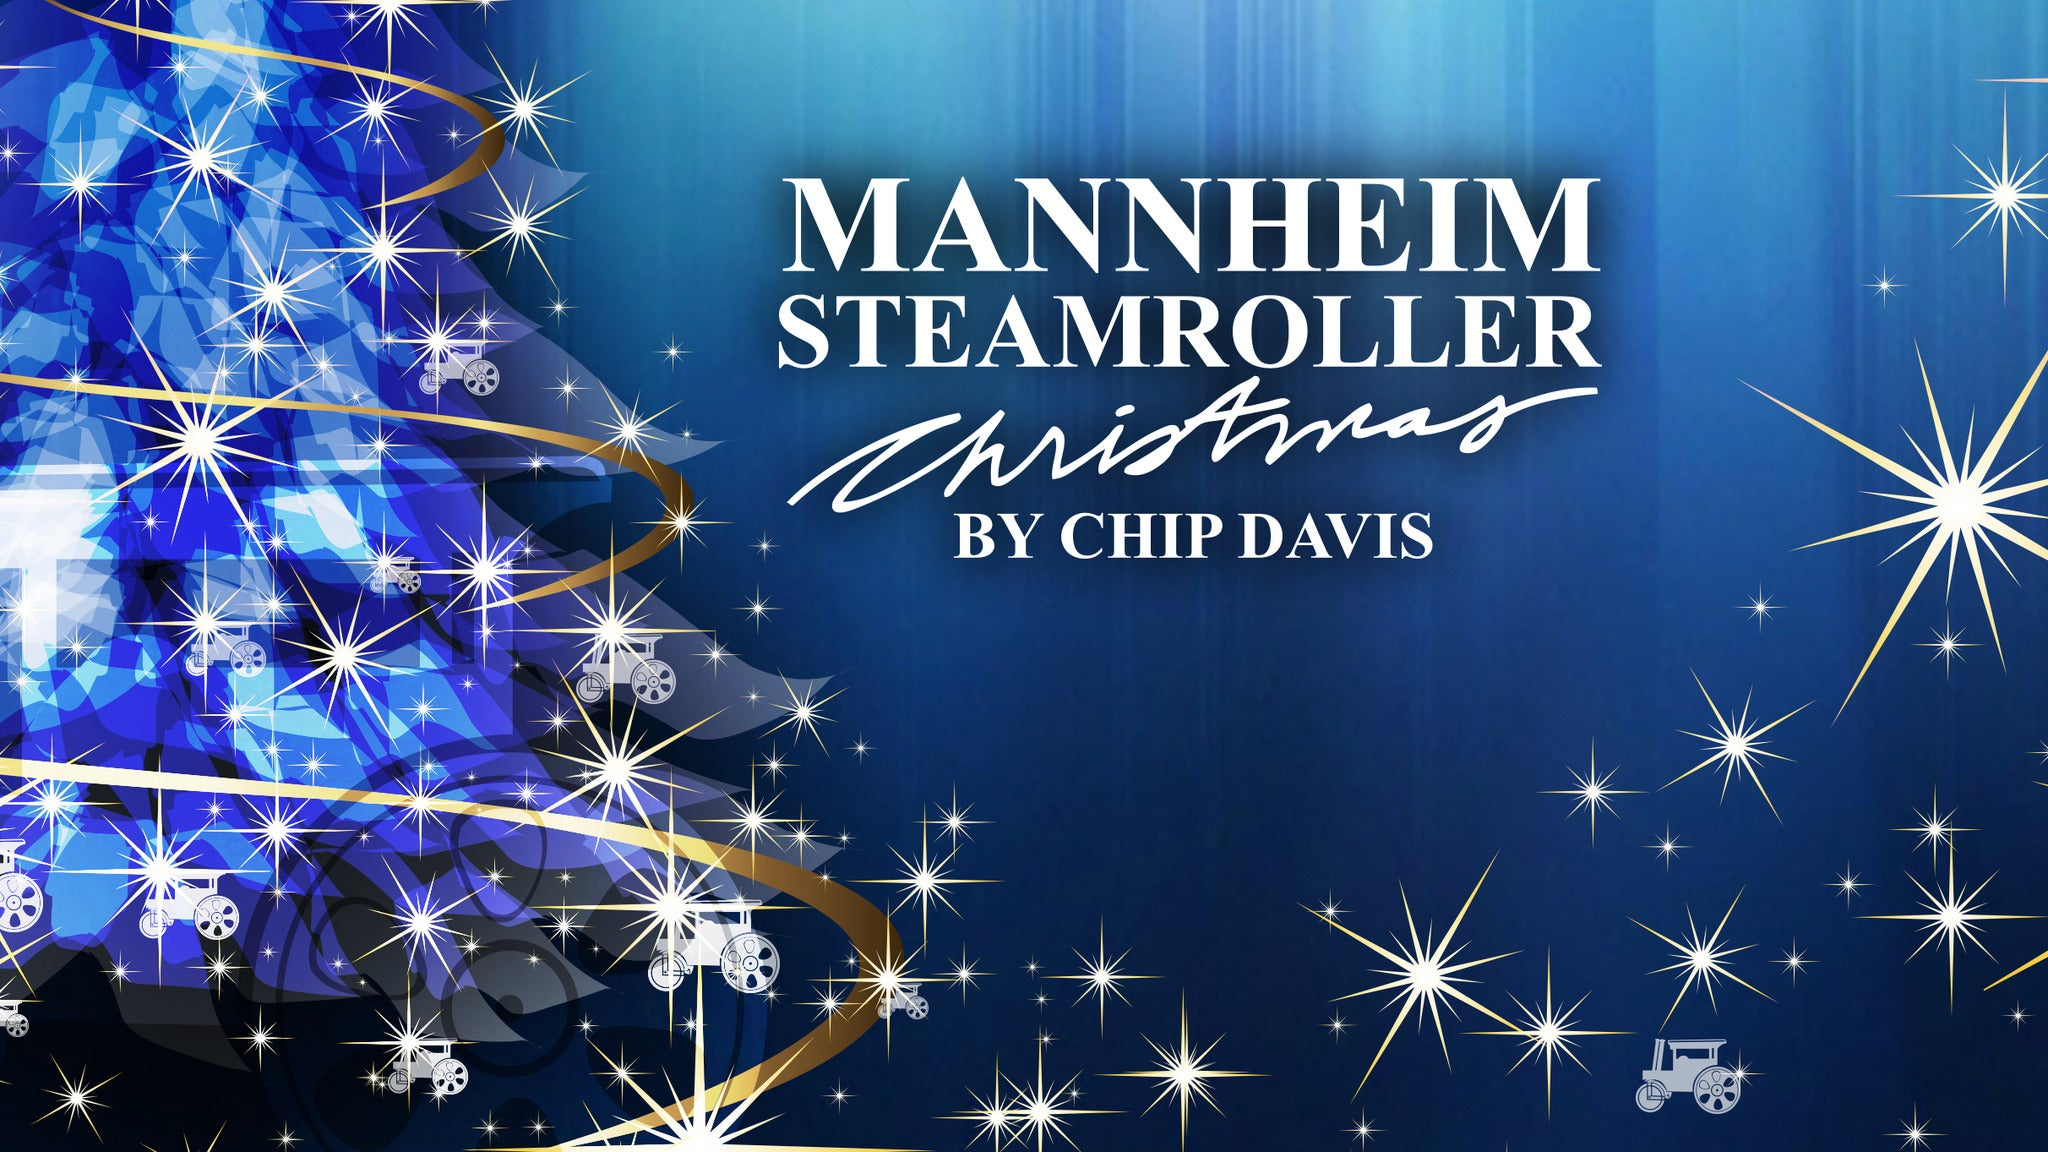 Mannheim Steamroller Christmas at Rosemont Theatre